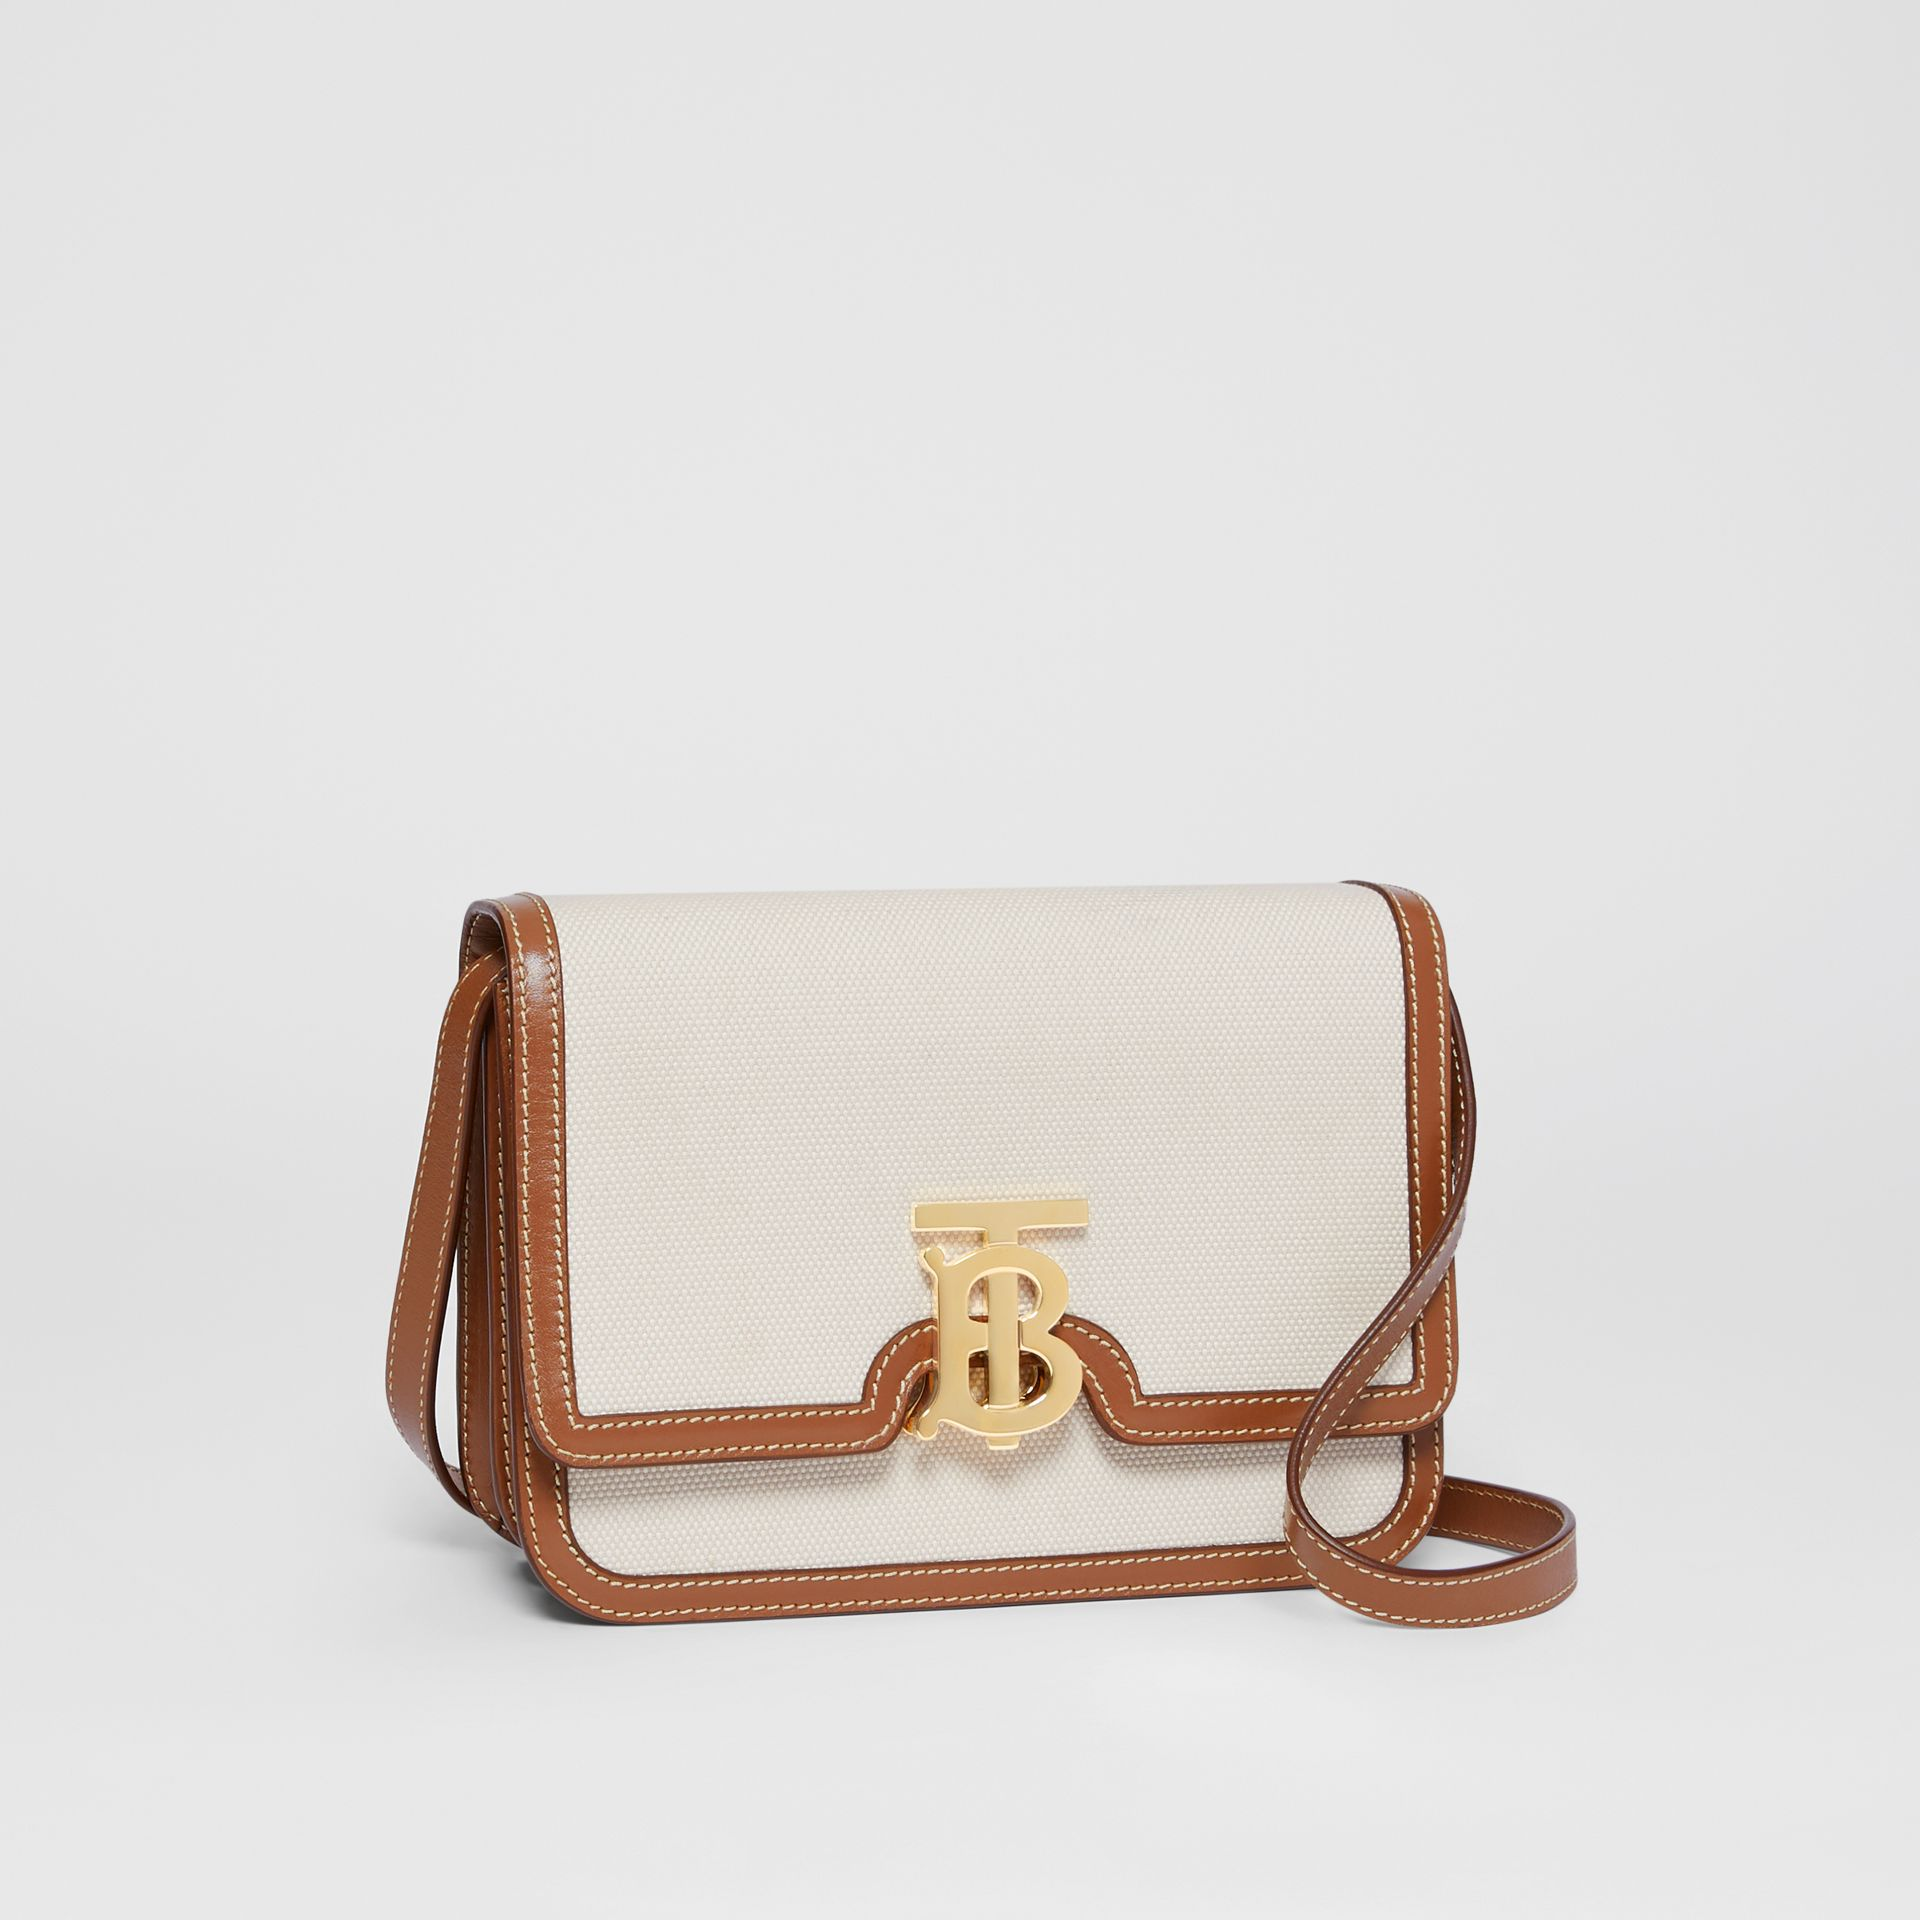 Small Two-tone Canvas and Leather TB Bag in Malt Brown - Women | Burberry Australia - gallery image 6